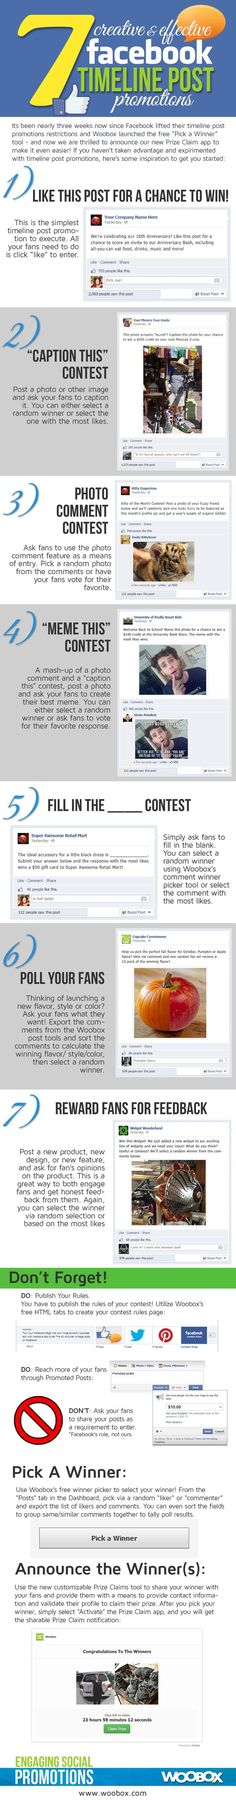 Social Media (www.riddsnetwork.in)  -- 7 Creative & Effective #Facebook Timeline Post Promotions [INFOGRAPHIC] By www.riddsnetwork.in/contact  (Indian SEO)